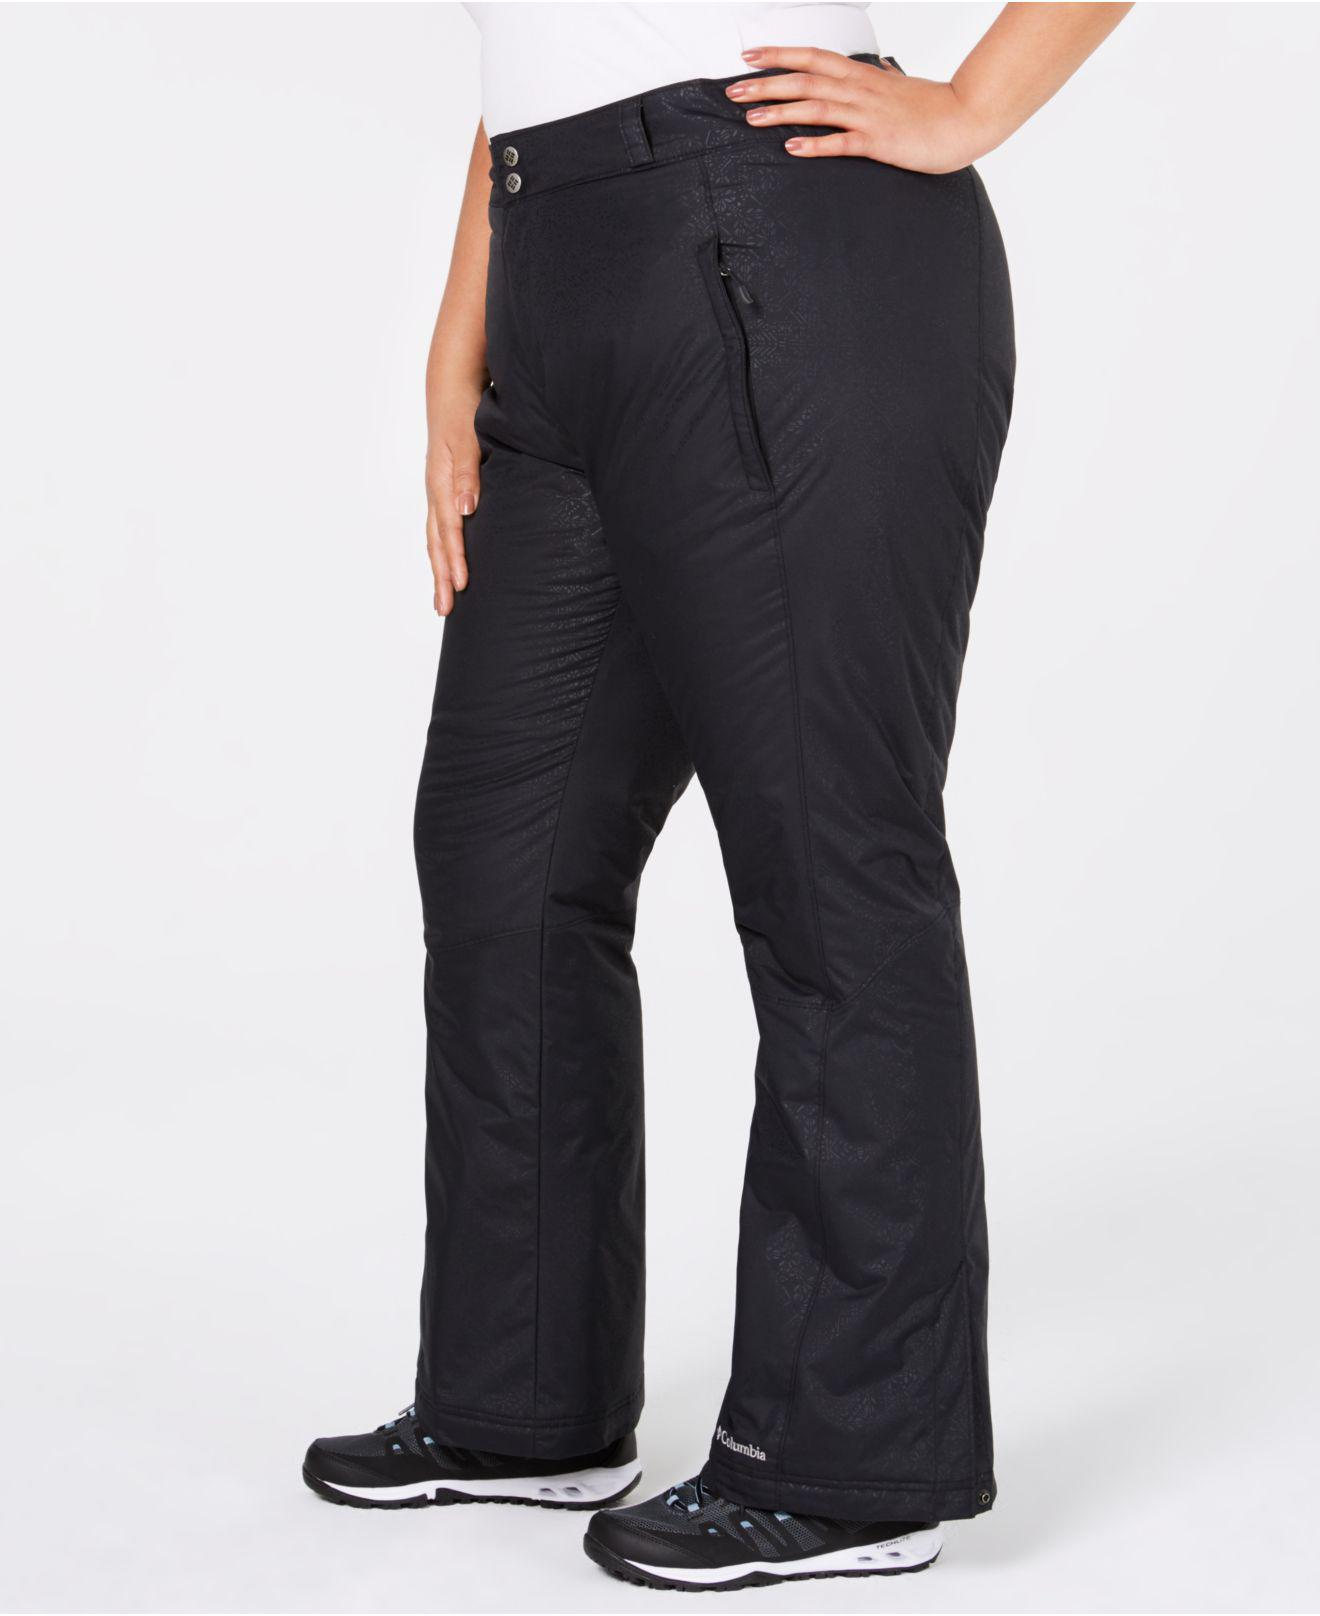 c6579c57ff7 Lyst - Columbia Plus Size Modern Mountaintm 2.0 Waterproof Pants in Black